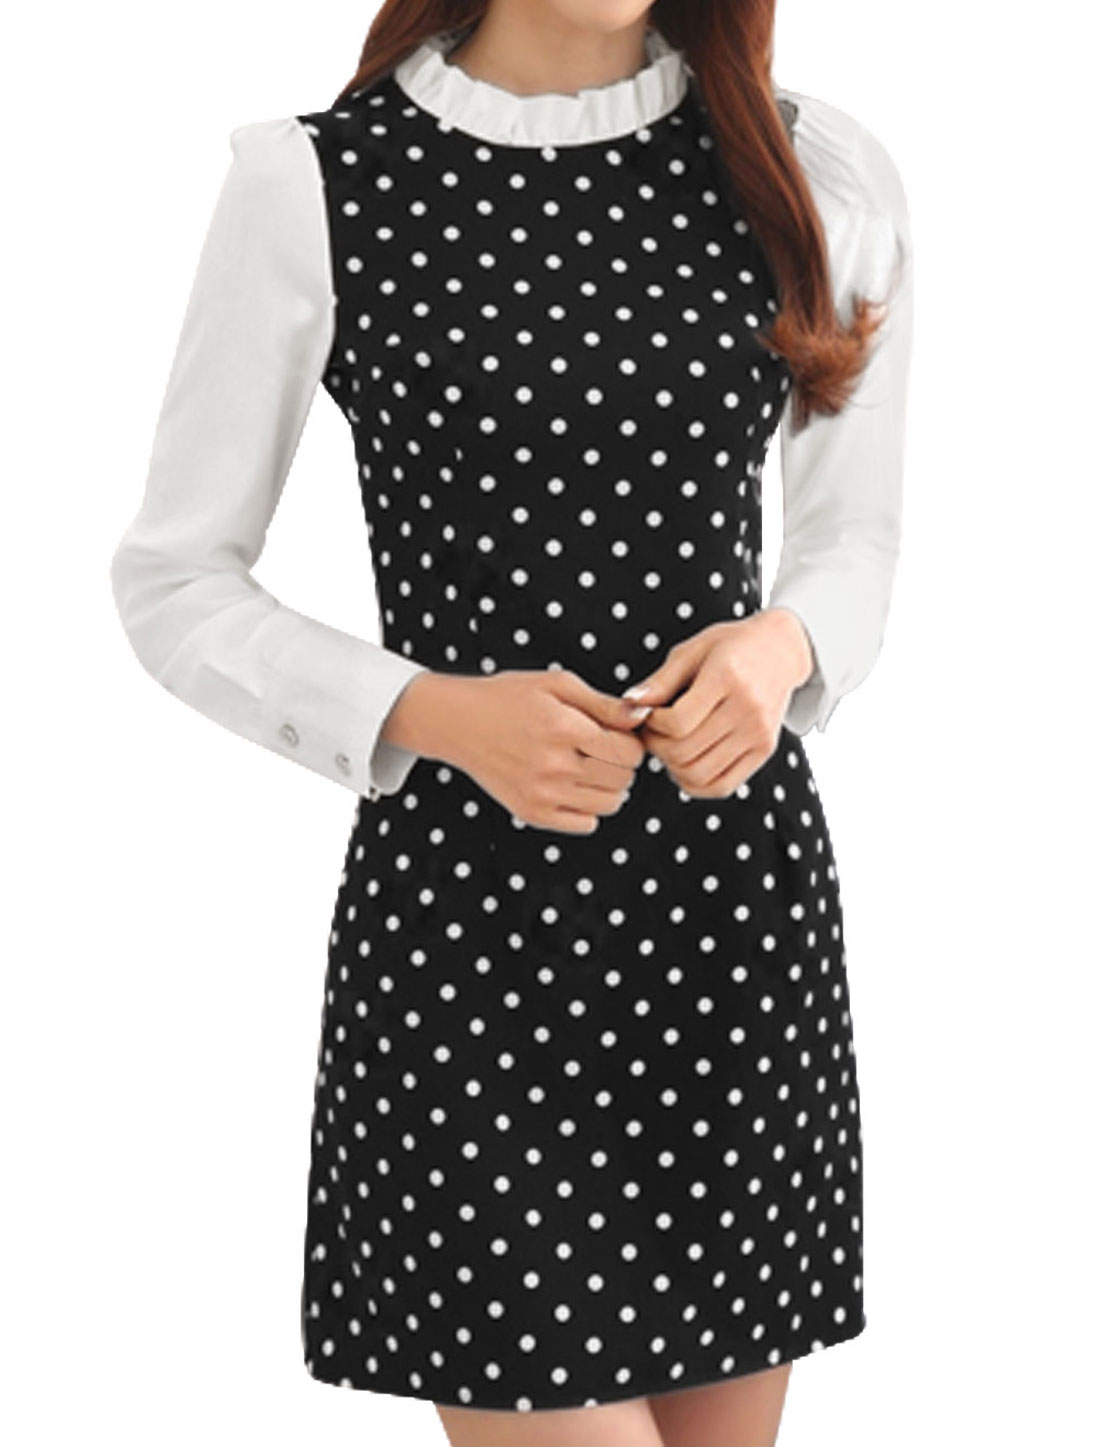 Women Ruffled Collar Long Sleeves Dots A-Line Dress Black M